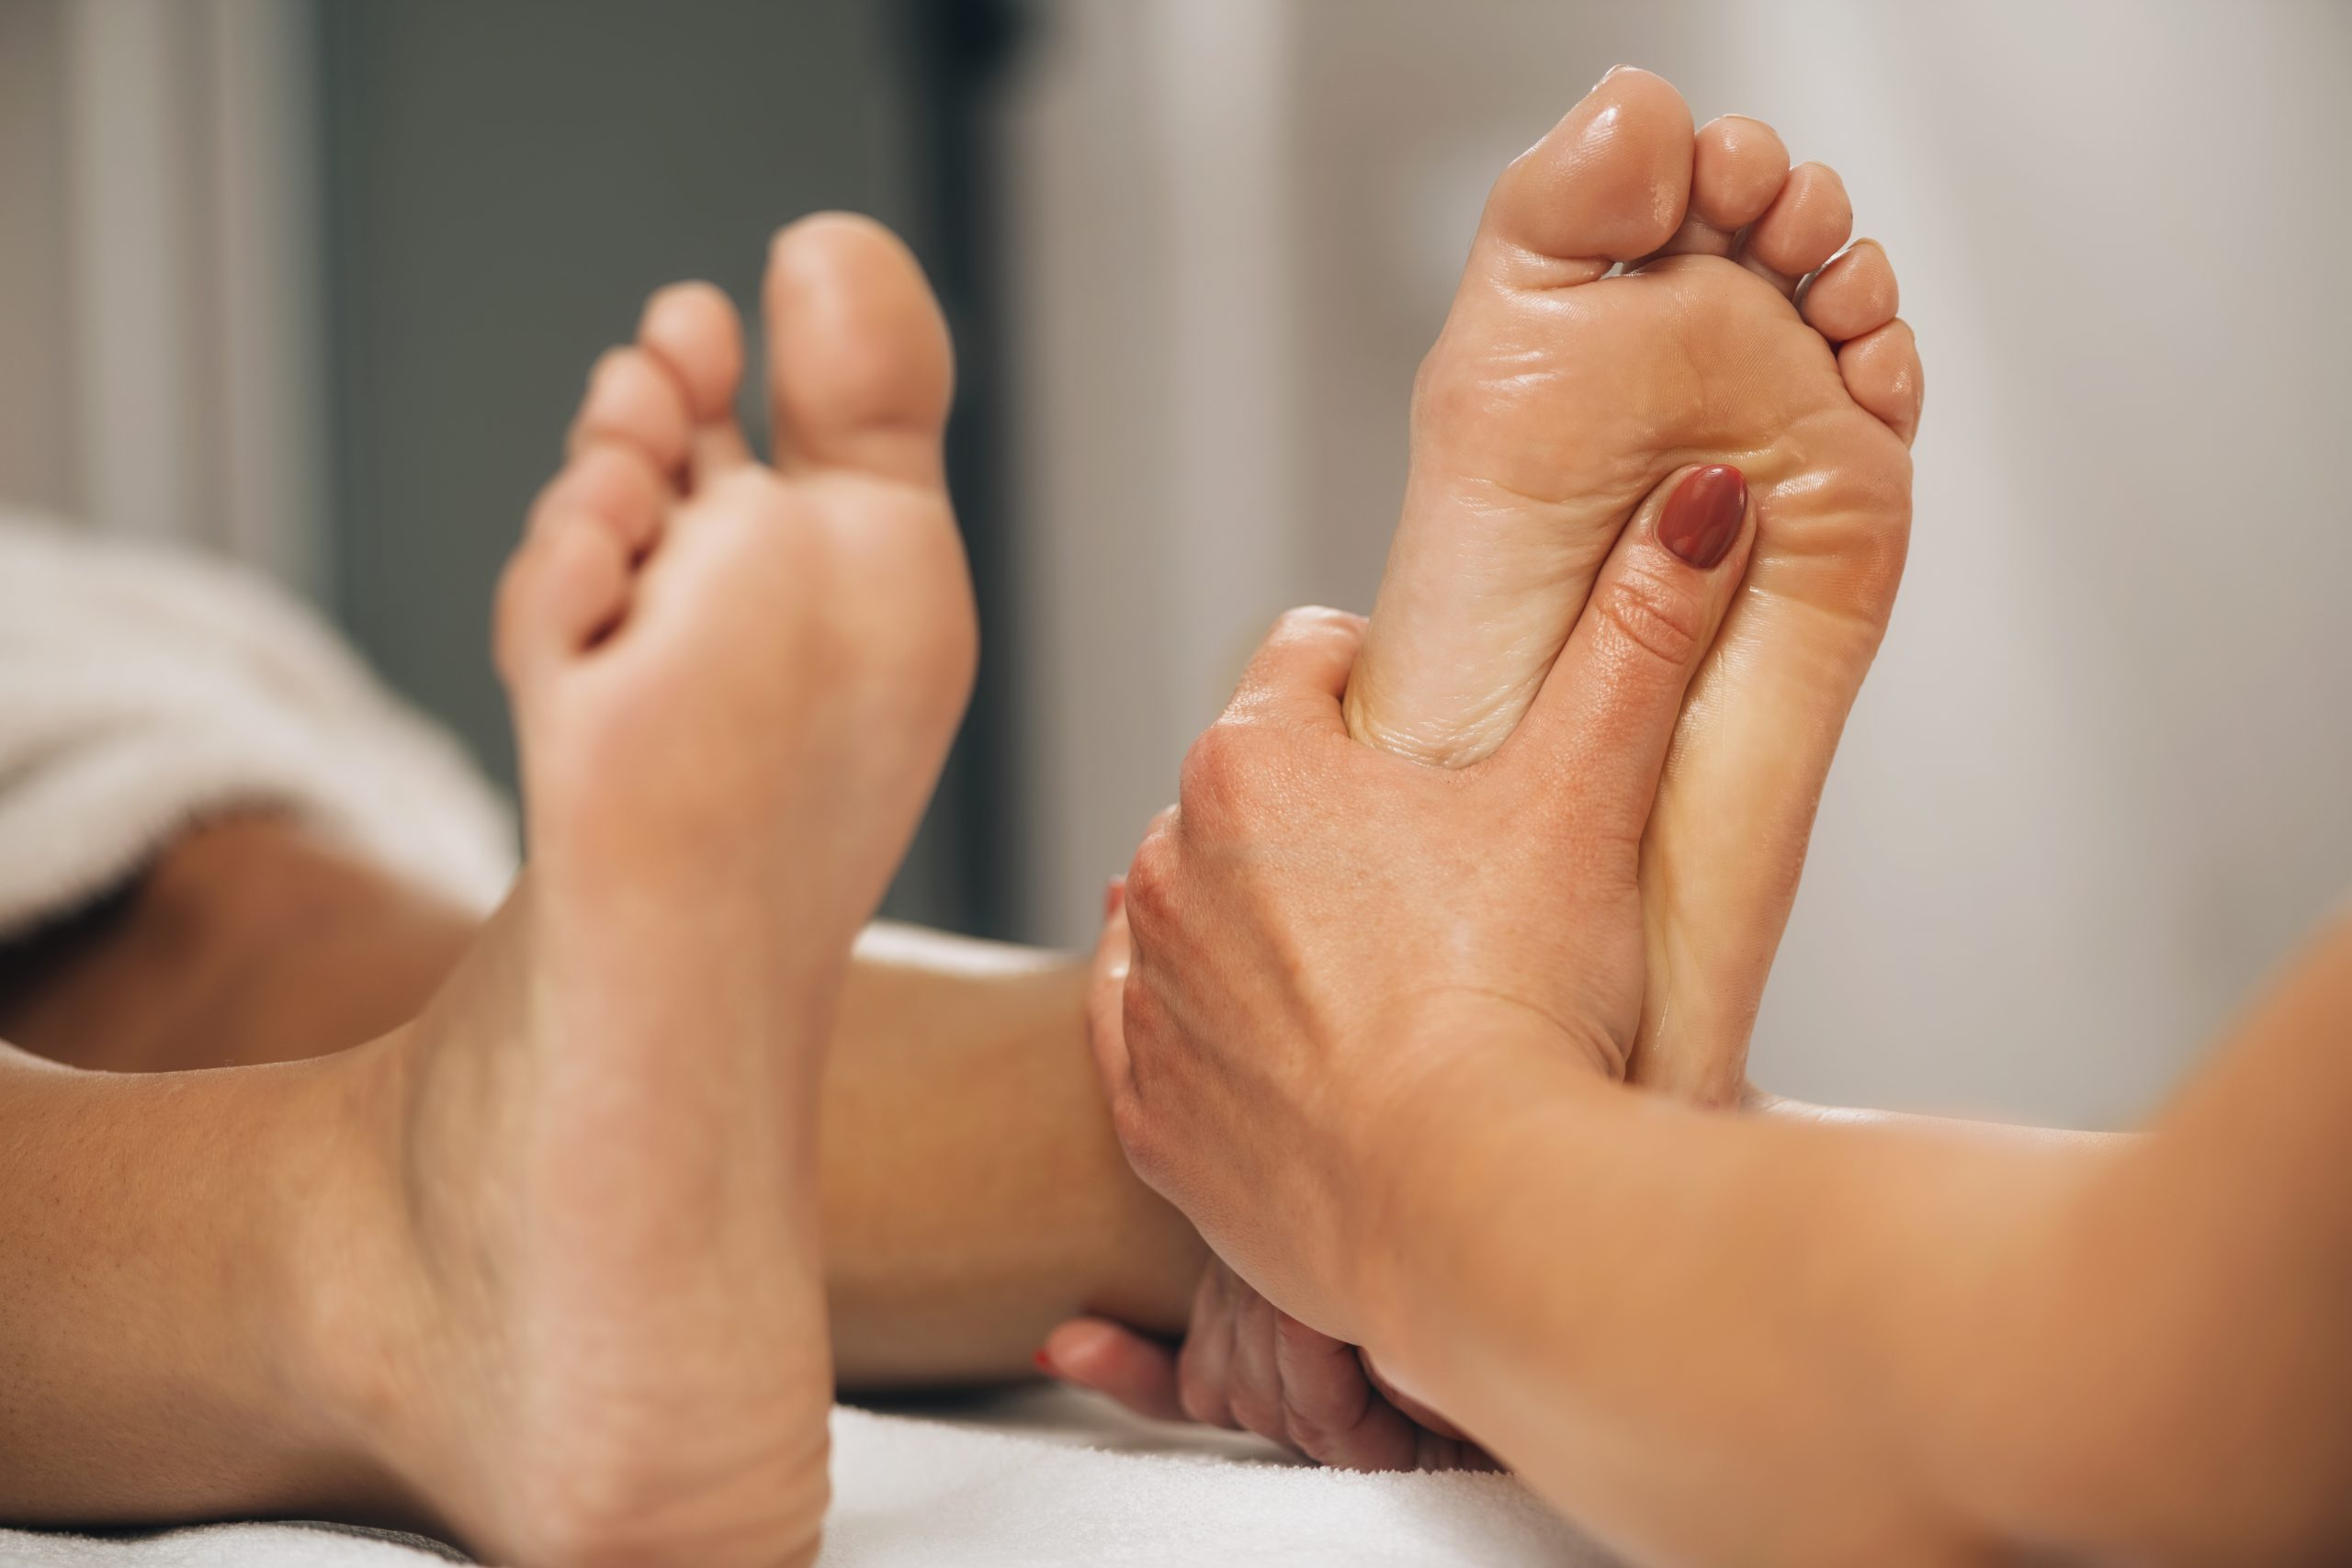 reflexology foot massage HVJGN2E